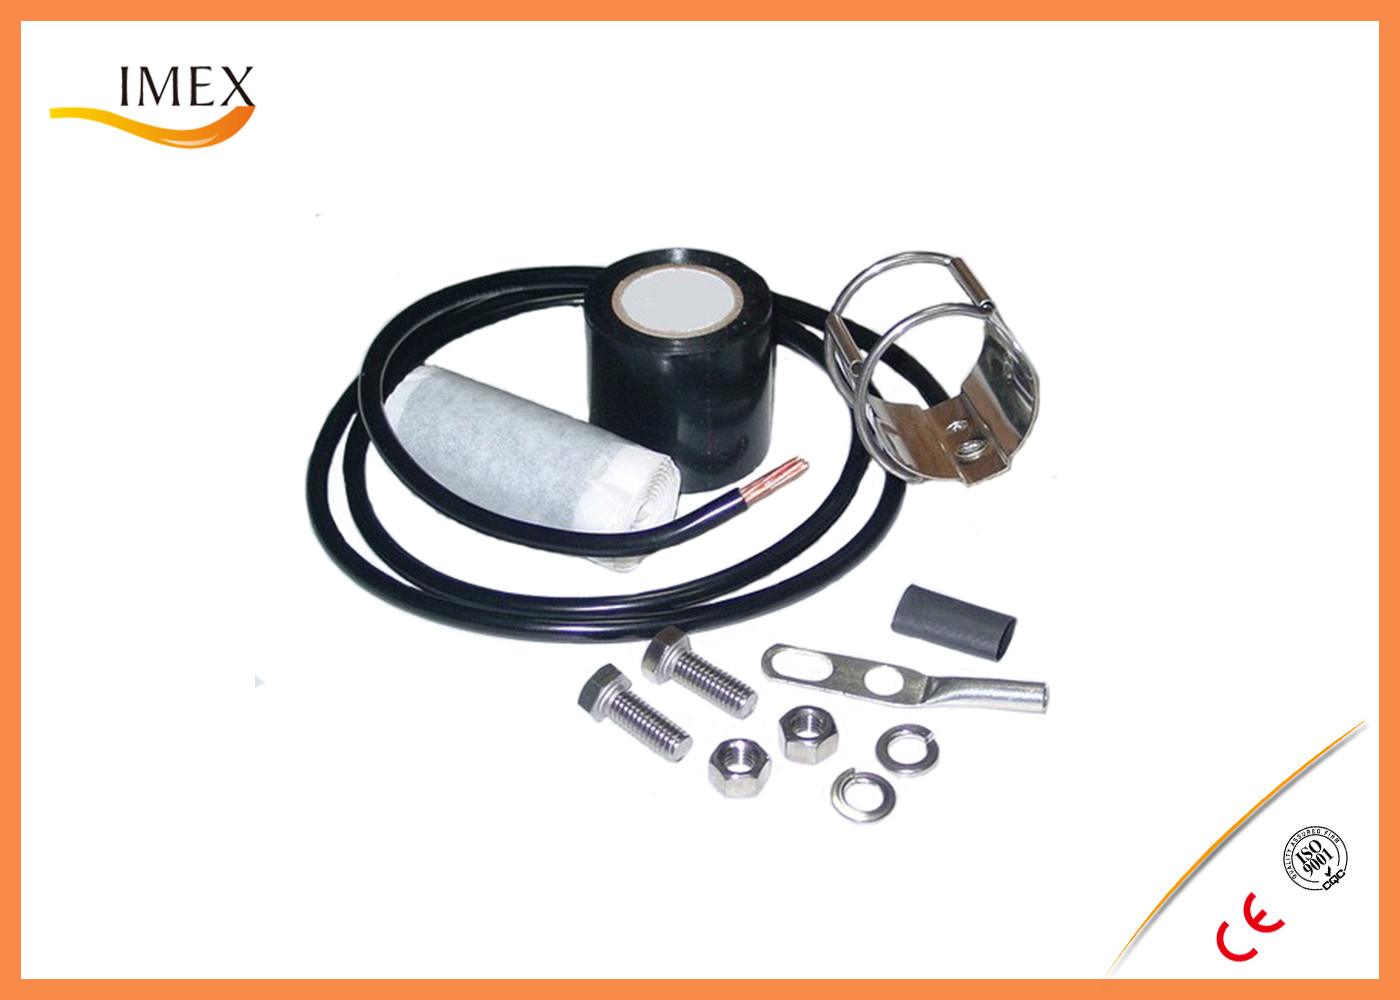 Grounding Kit For 1/2 in coaxial cable for 1/4'' 1/2'' 1-5/8'' feeder cable